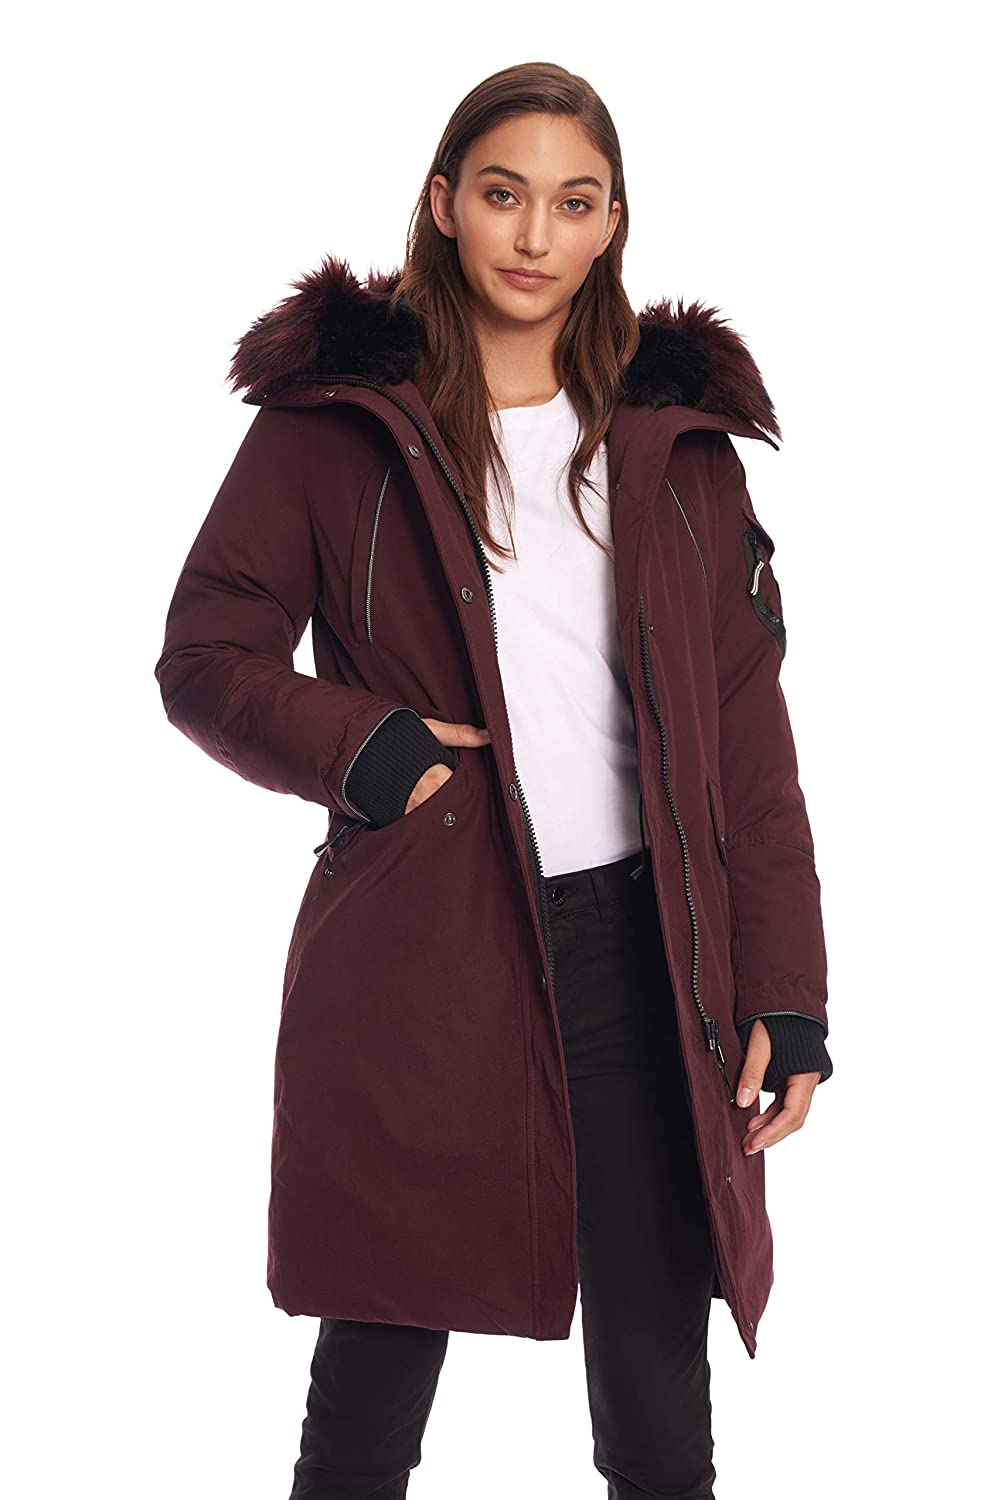 Image of Alpine North Womens Vegan Down Long Parka Winter Jacket Down & Down Alternative